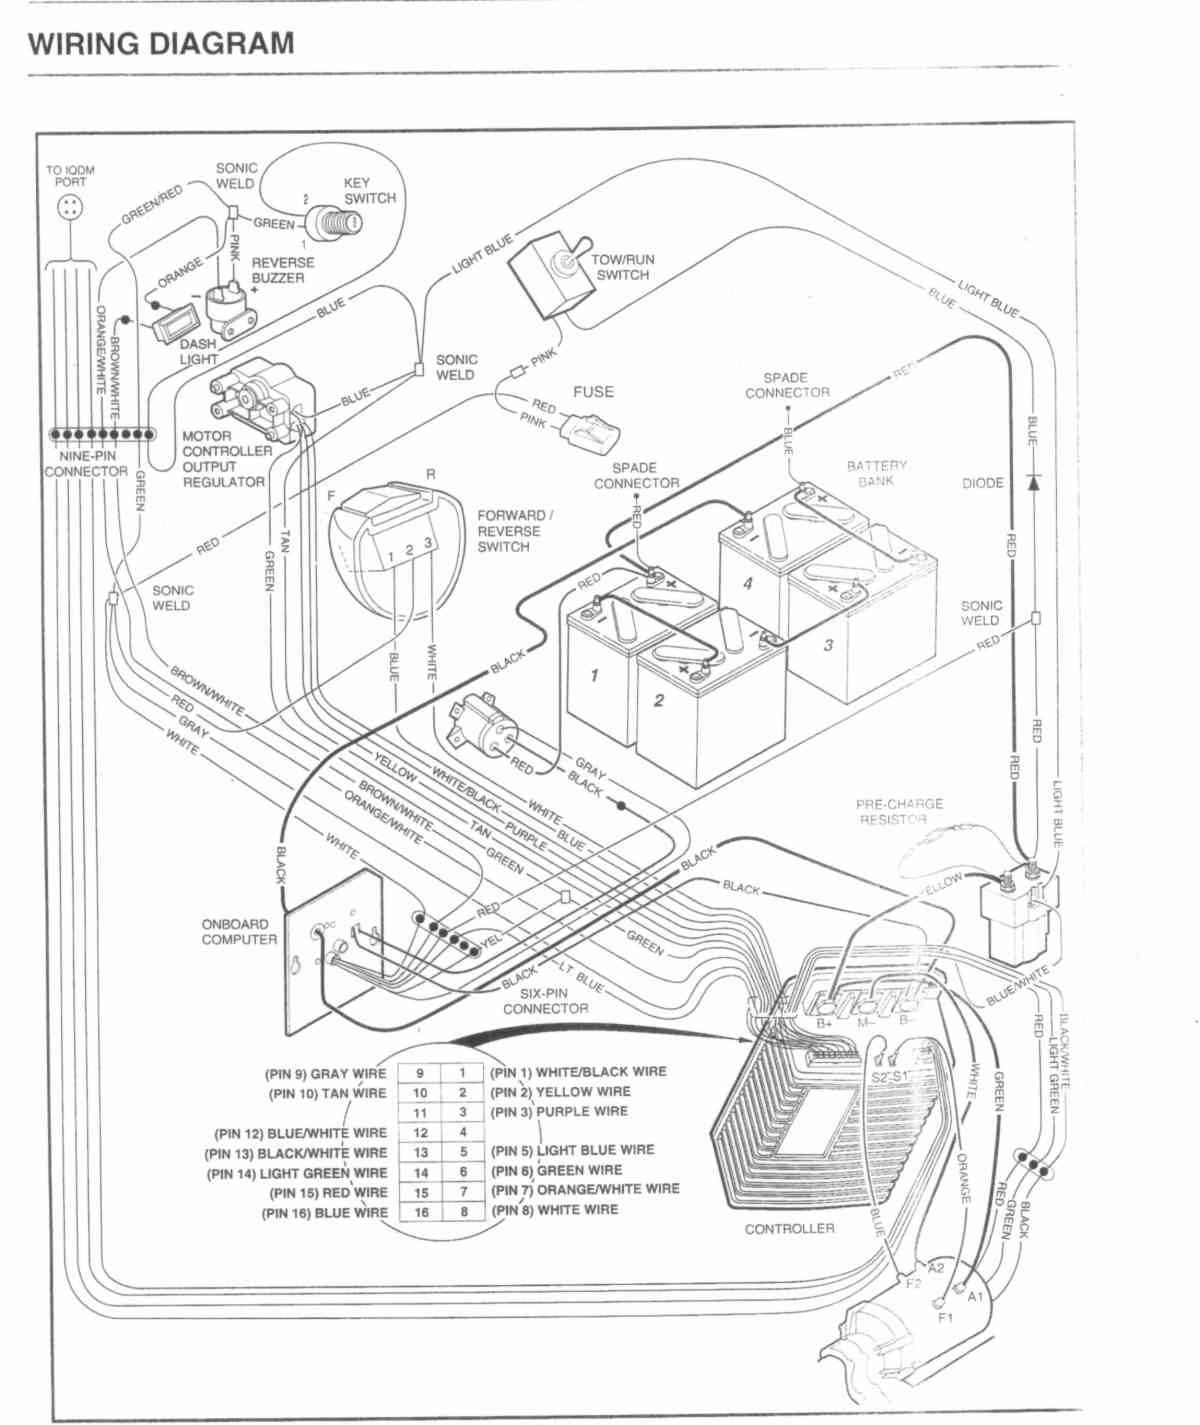 1995 Club Car Wiring Diagram - WIRE Center •